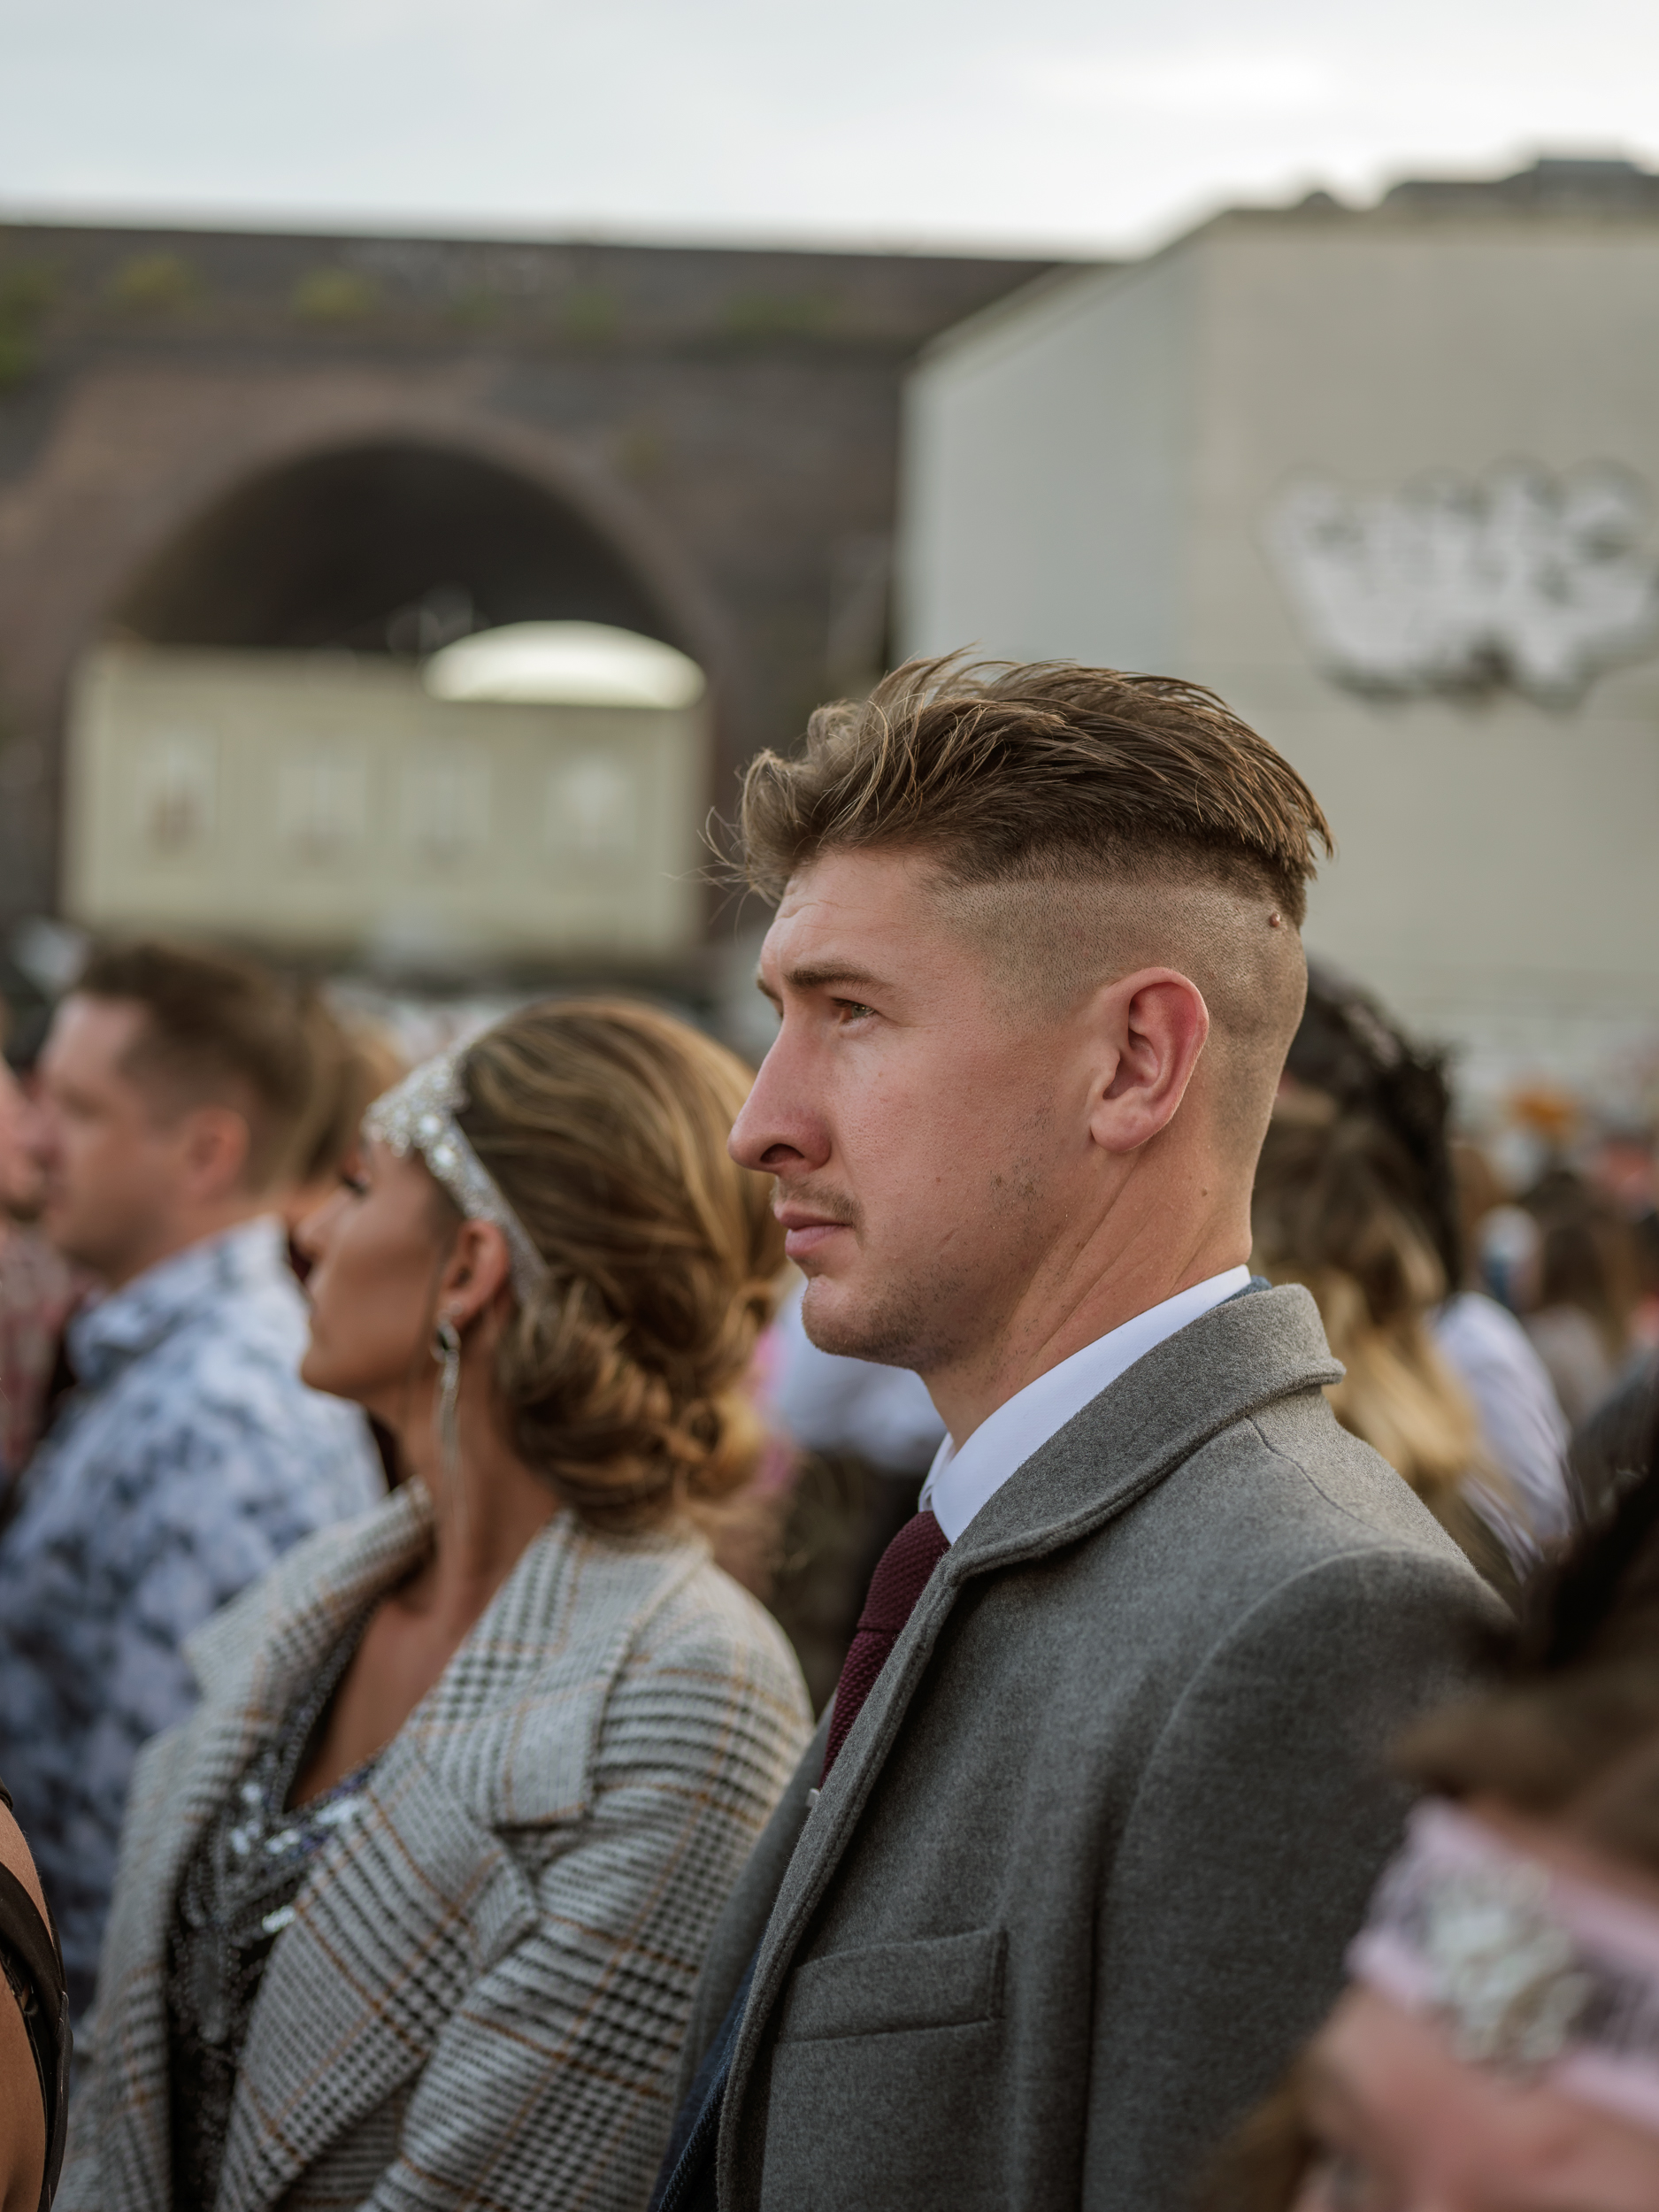 Peaky Blinders Has Done The Impossible Changed British Men